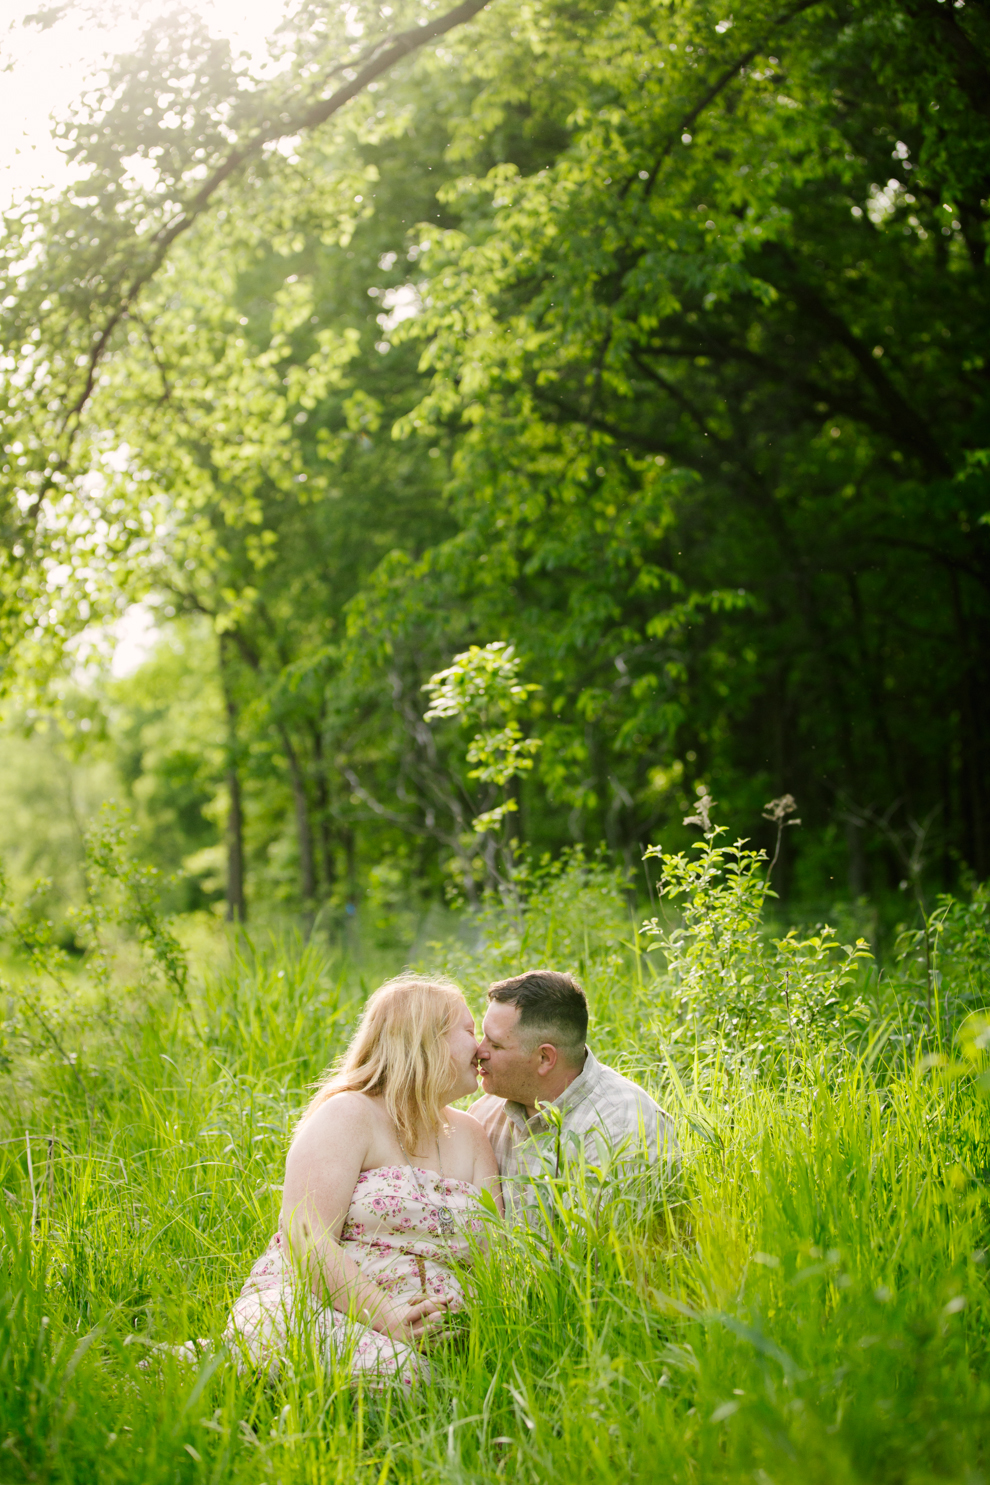 052216_Ryan_Nicole_Engagement_012